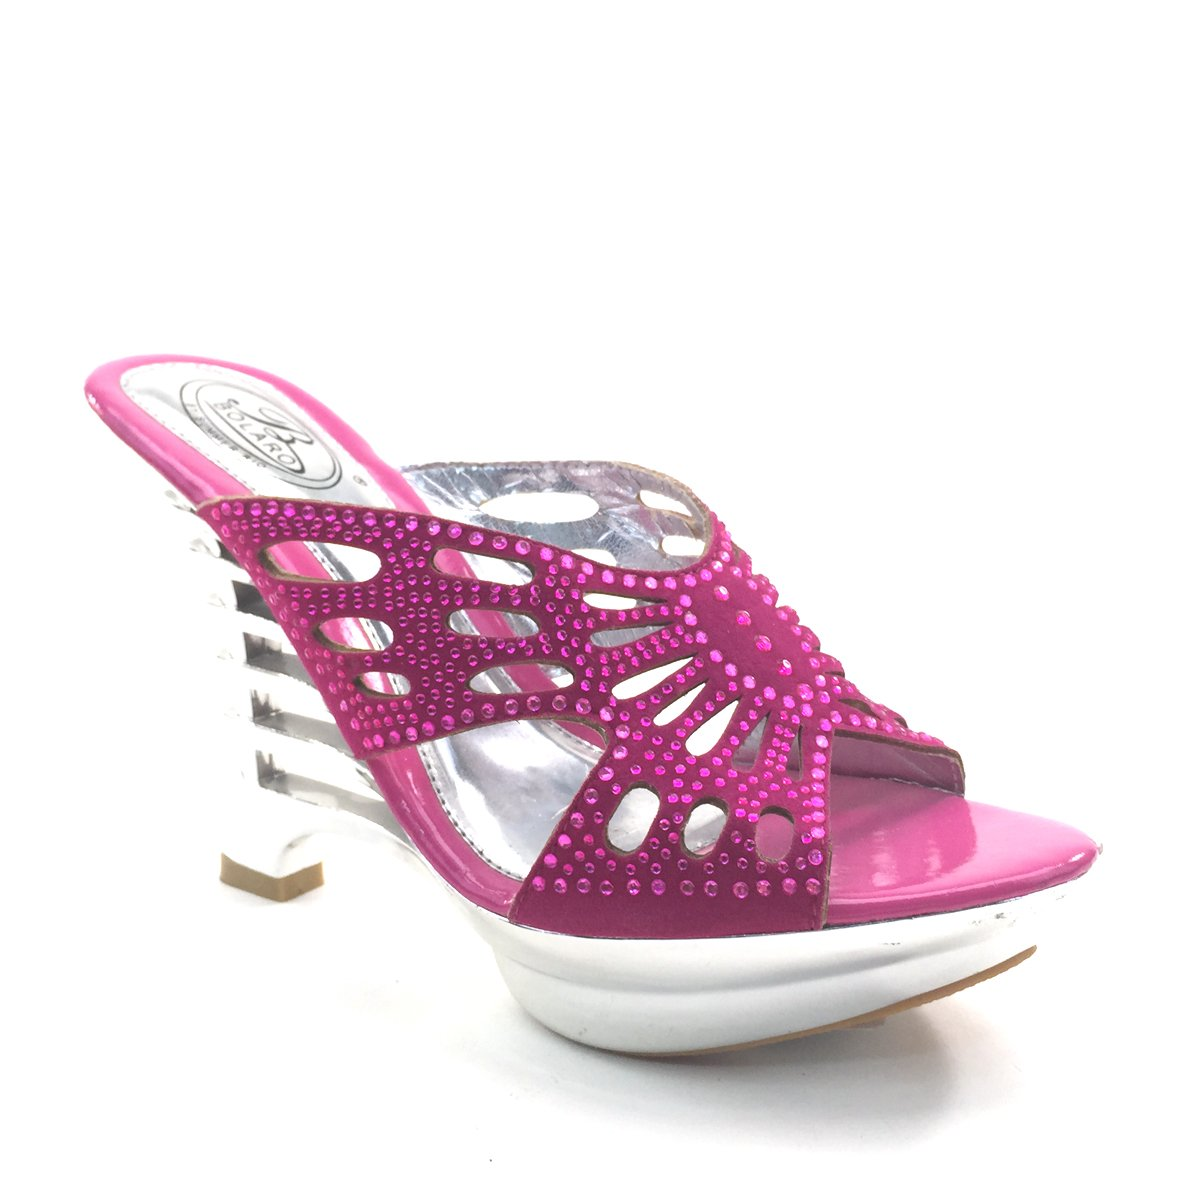 New Brieten Women's Rhinestone Cut Out Wedge Platform Slide Sandals B00HVUT1S4 6.5 B(M) US|Fuchsia